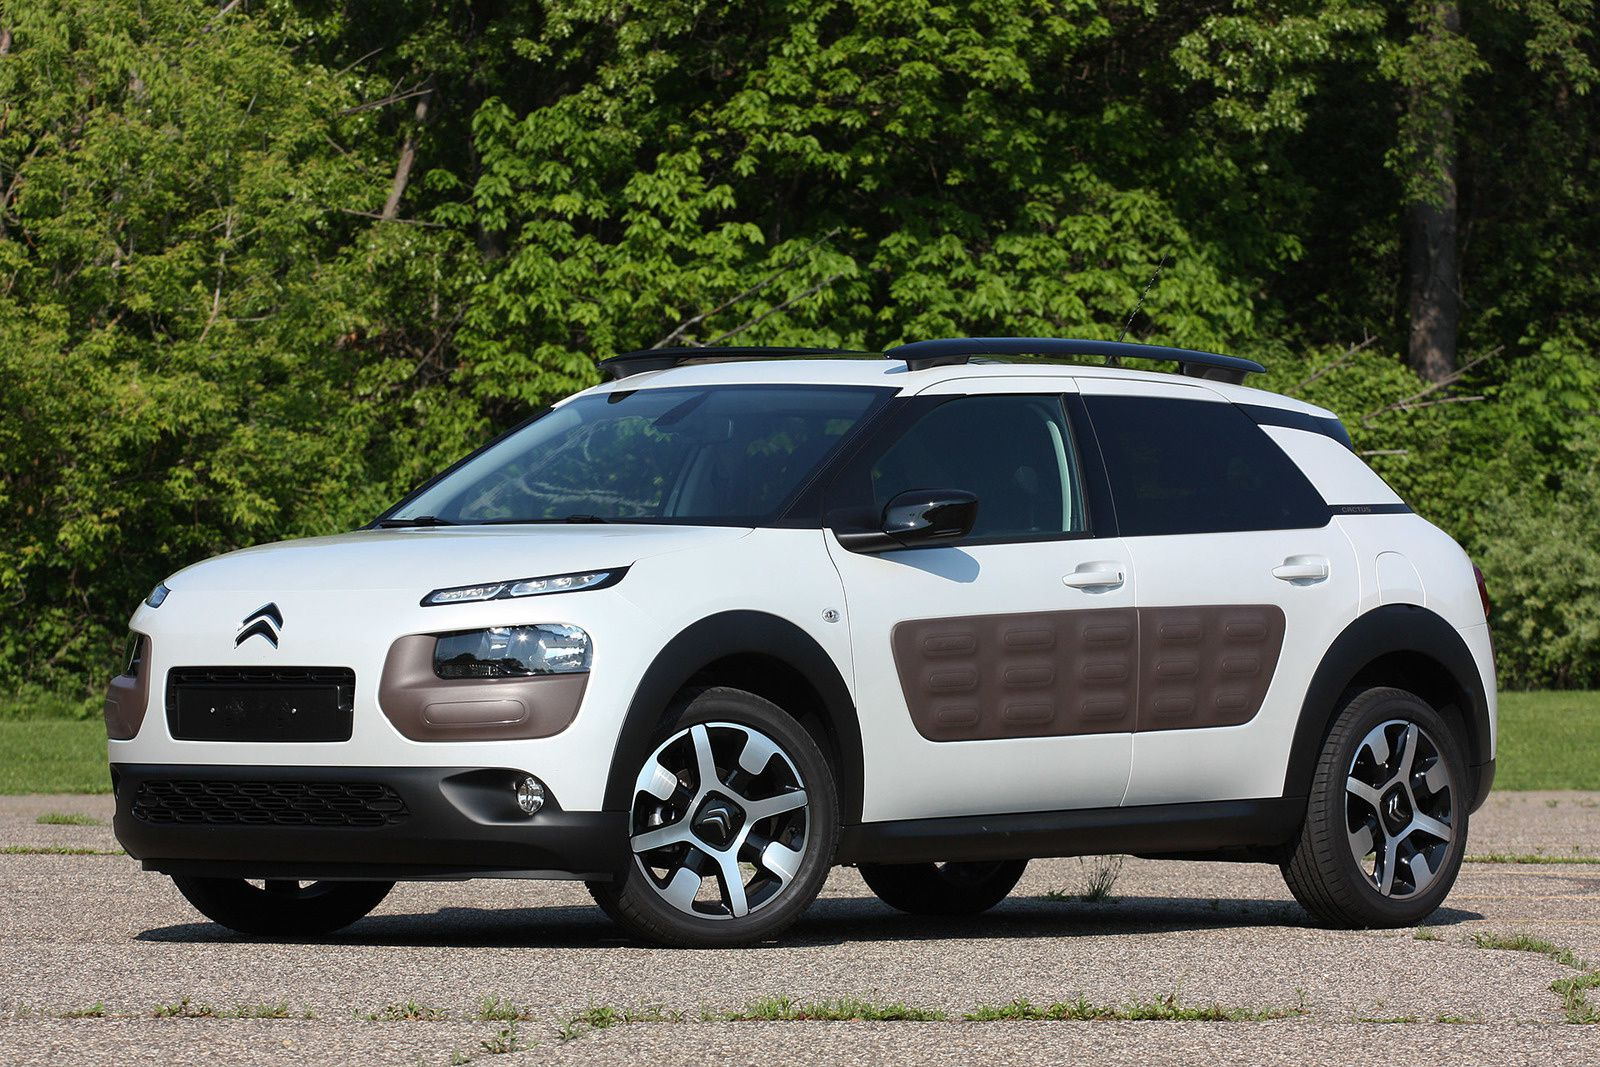 Citroën C4 Cactus in the USA